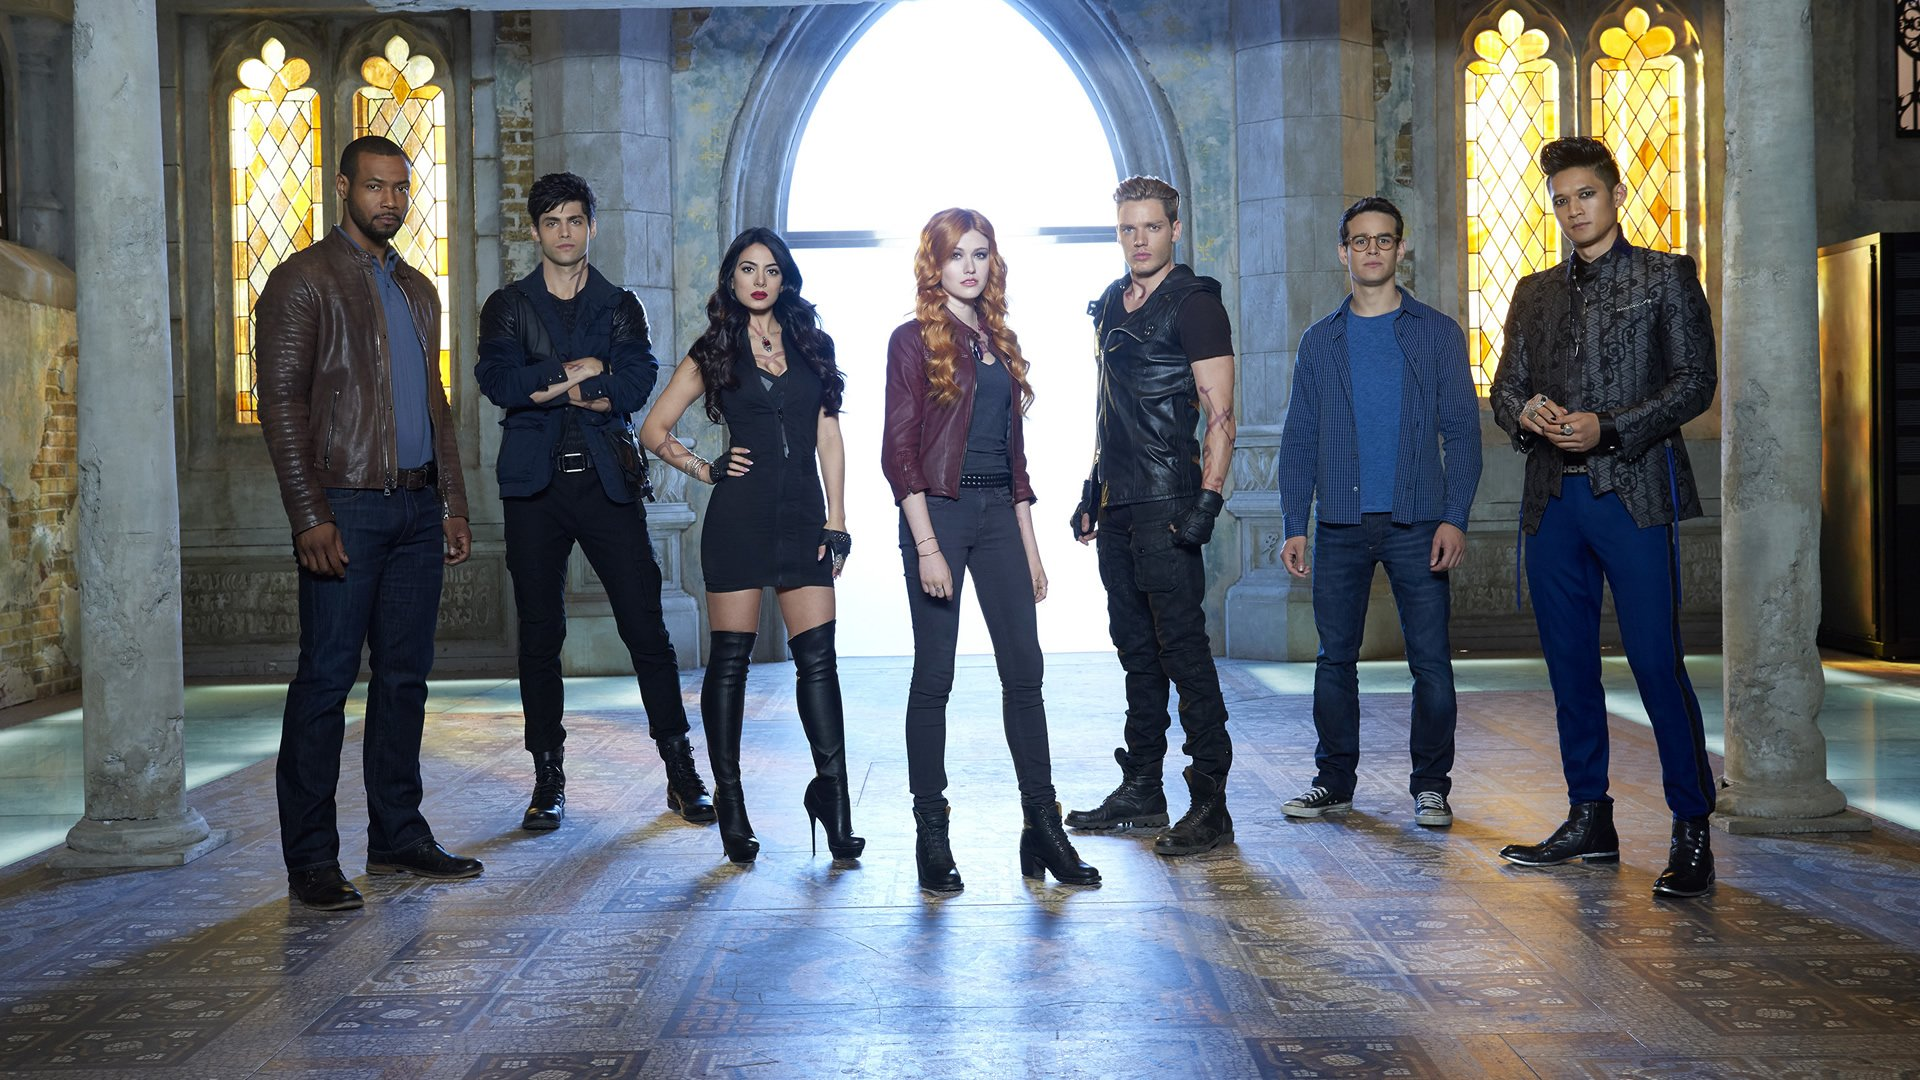 11 Shadowhunters Hd Wallpapers Background Images